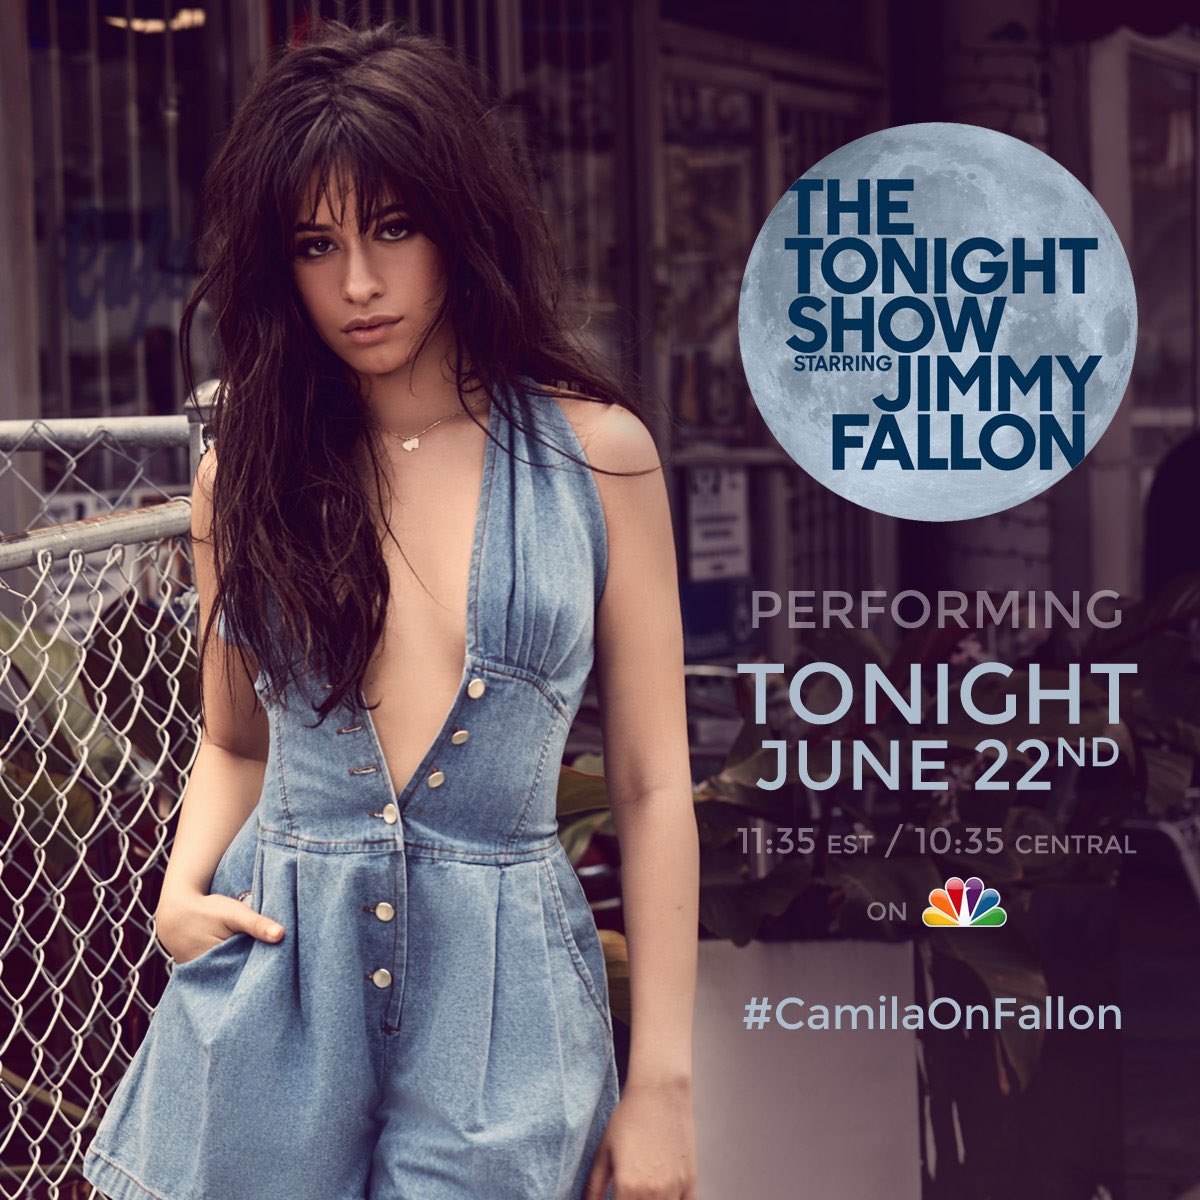 Don't miss @Camila_Cabello performing tonight on @FallonTonight #Camil...